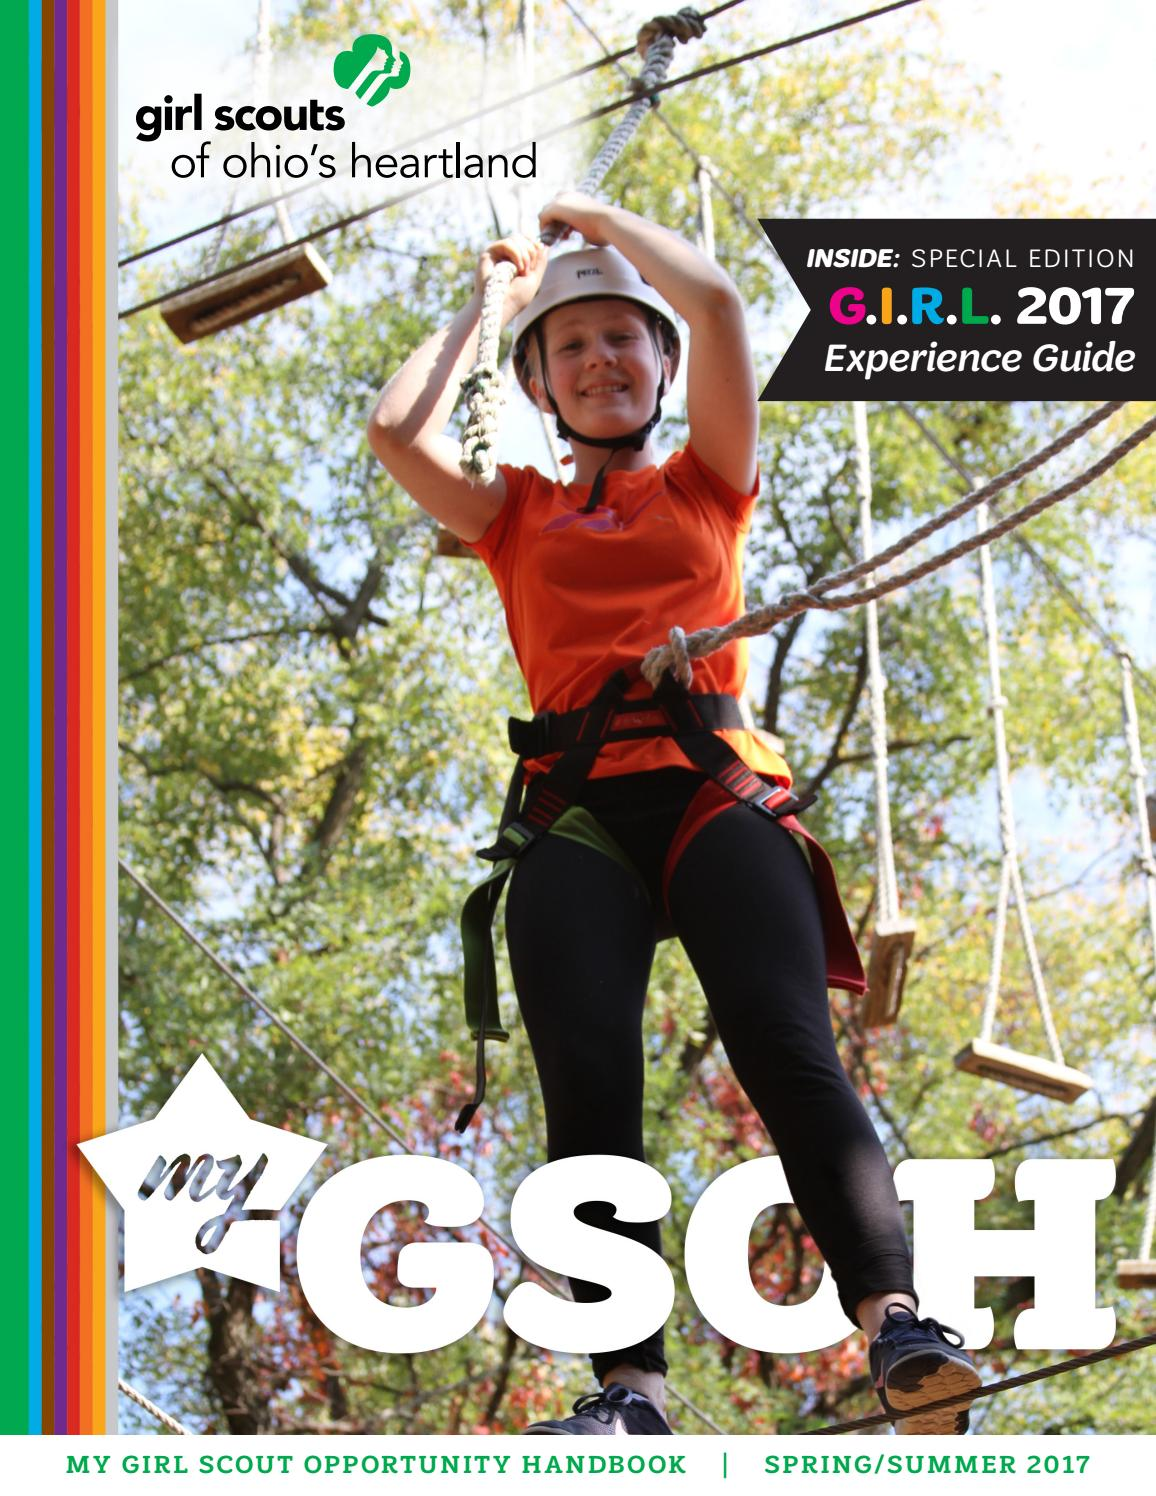 MyGSOH Spring/Summer 2017 by Girl Scouts of Ohio's Heartland